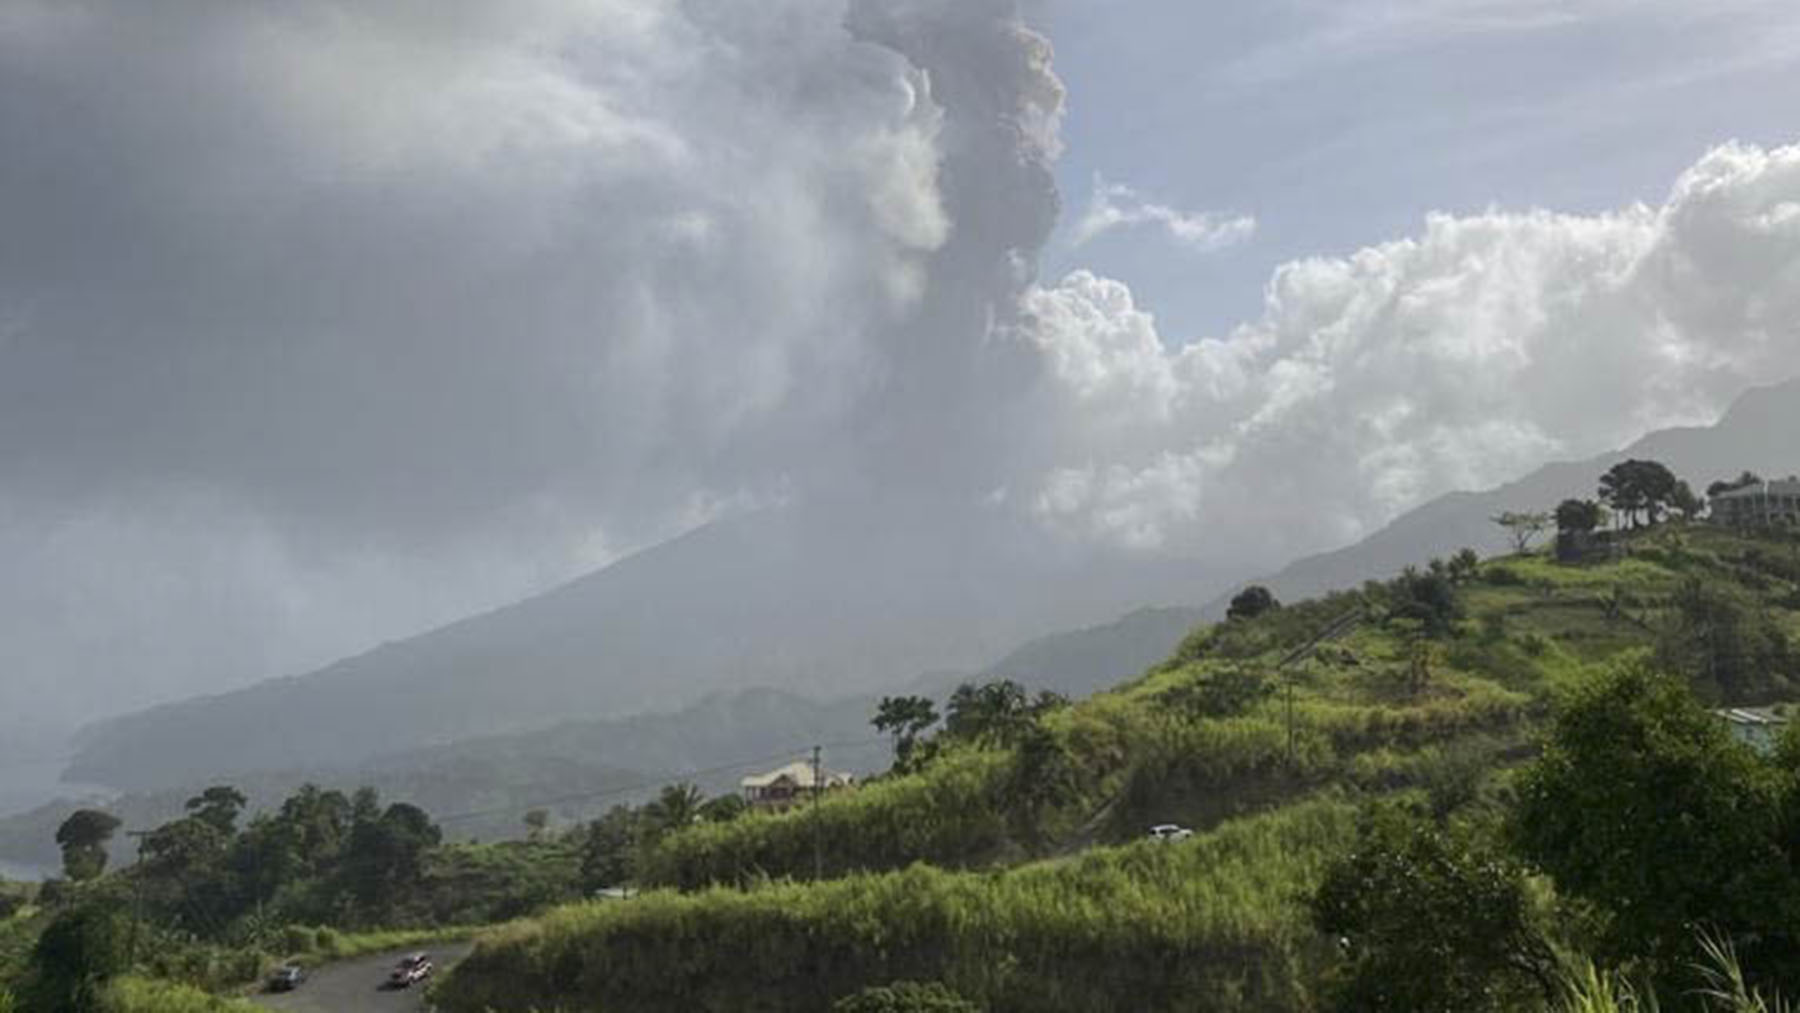 A view of St. Vincent and the Grenadines' La Soufrière volcano. (Photo courtesy of the University of the West Indies Seismic Research Center)